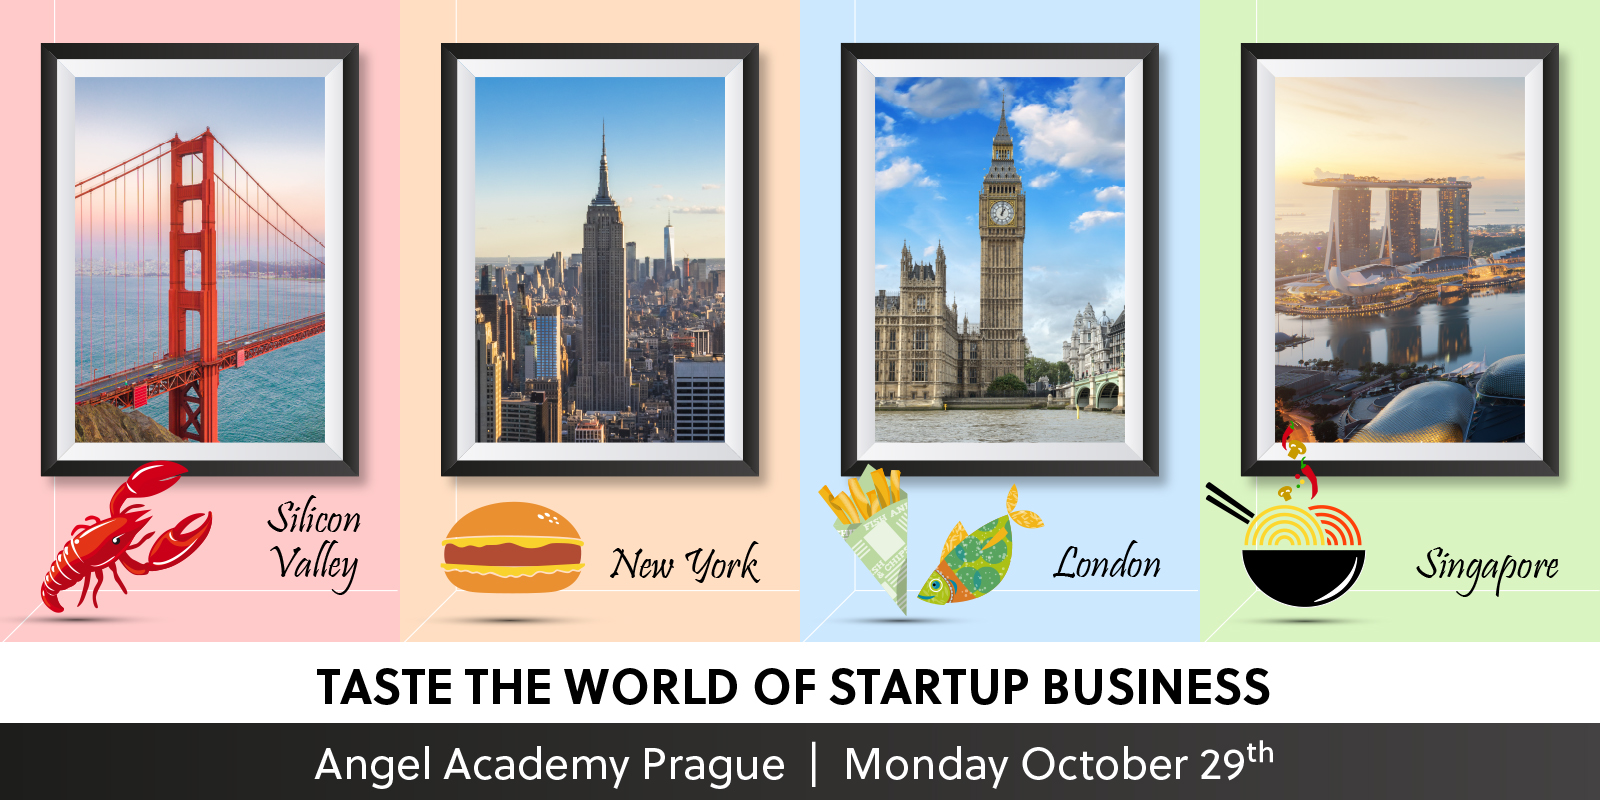 Angel Academy Prague - Taste the World of Startup Business attachment